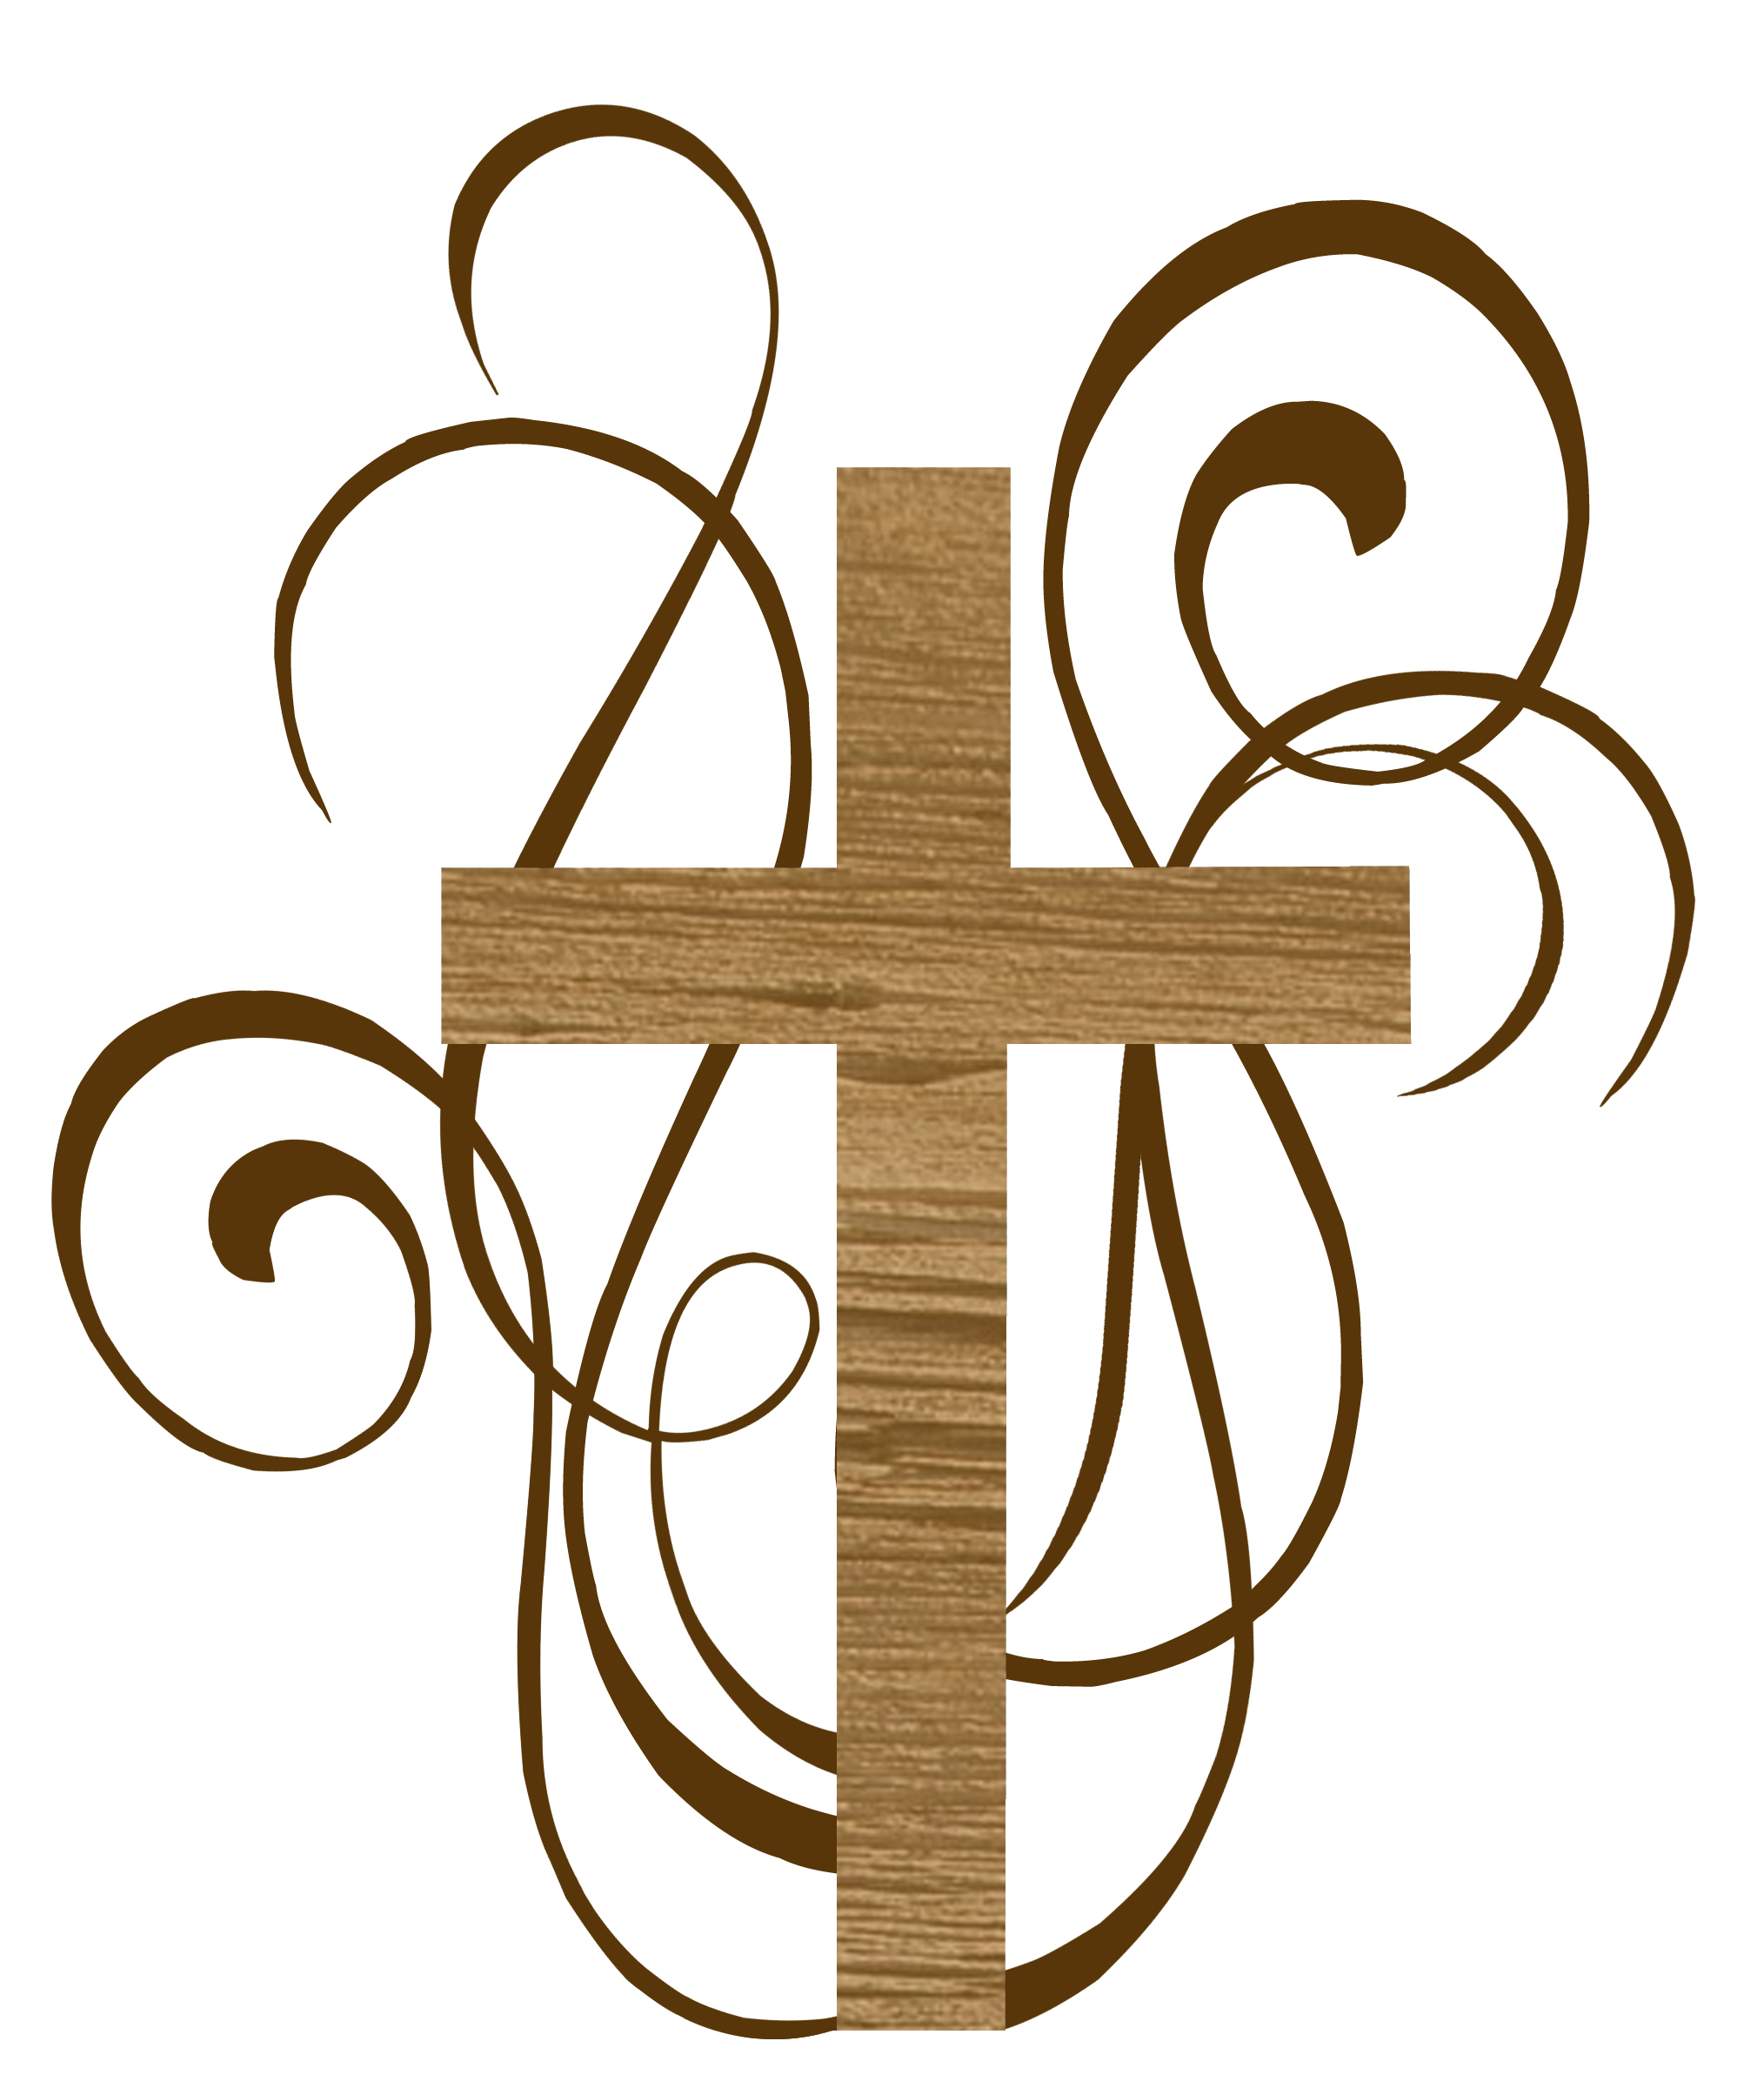 Free Clip Art Sites Catholic – Clipart Free Download